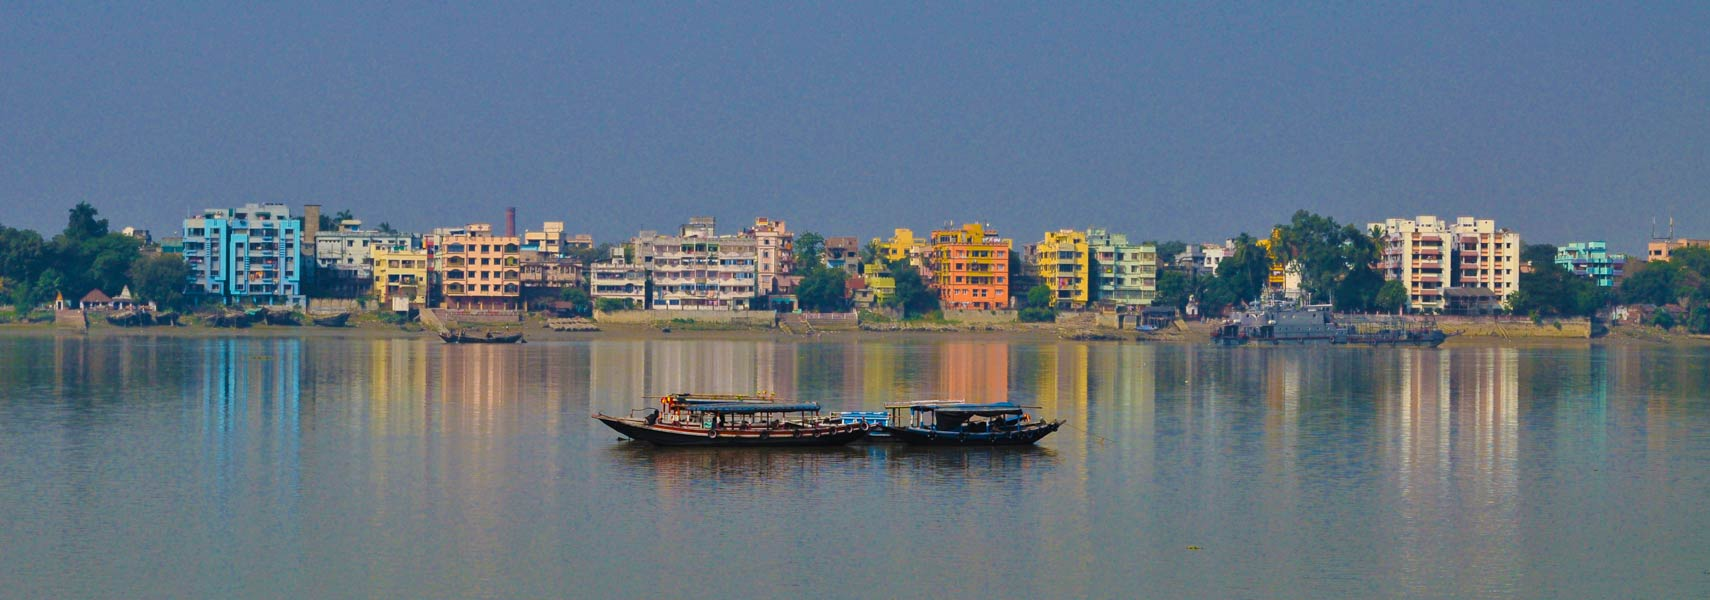 View of Kolkata from the banks of the River Ganga in West Bengal